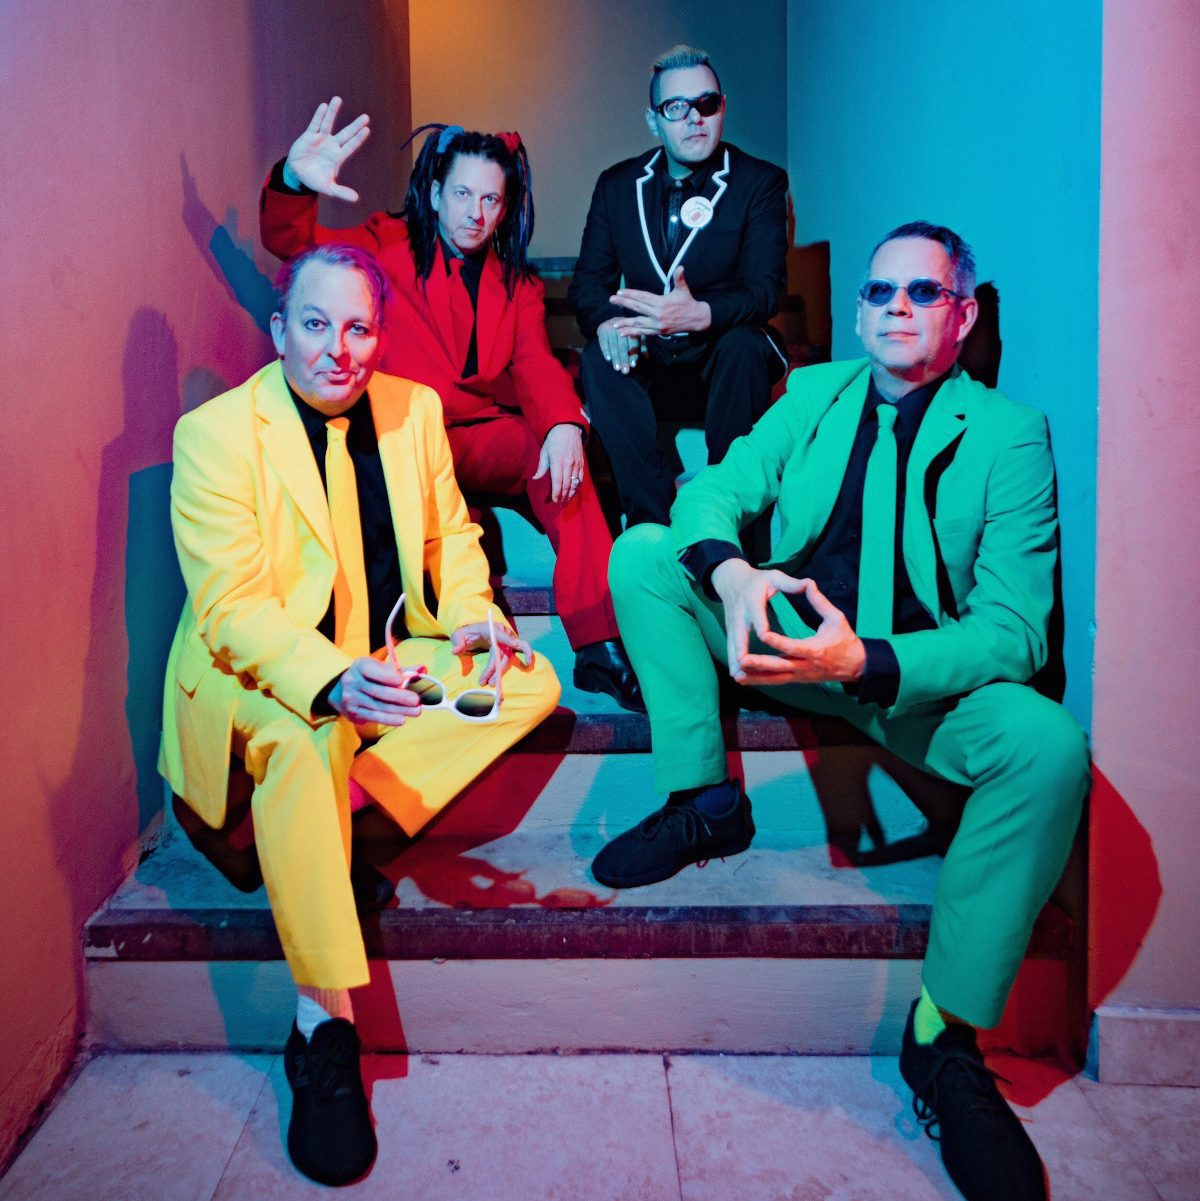 Synthpop cult act Information Society returns with'ODDfellows', the 1st album in THXⓇ Spatial Audio